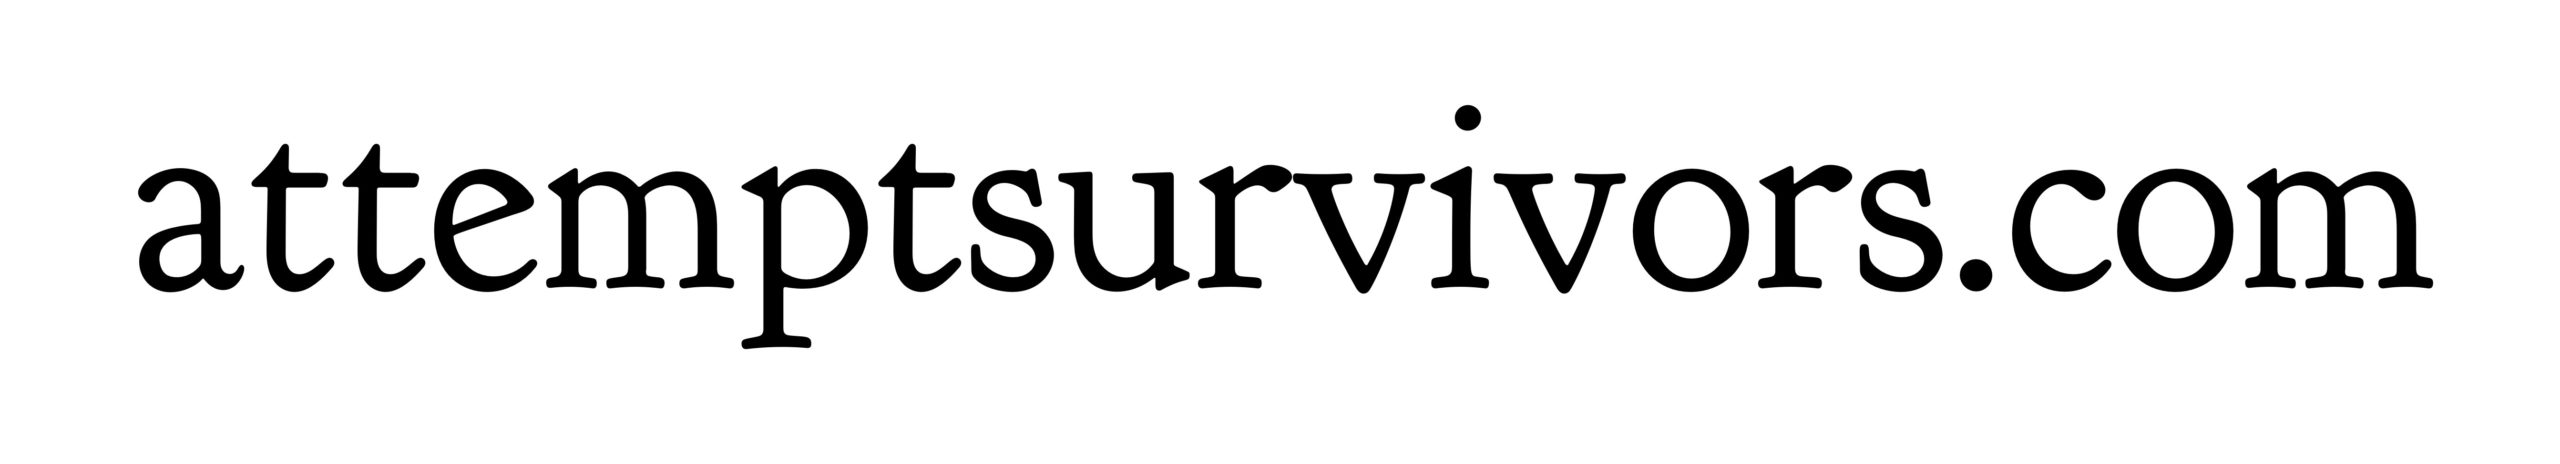 Attempt Survivors